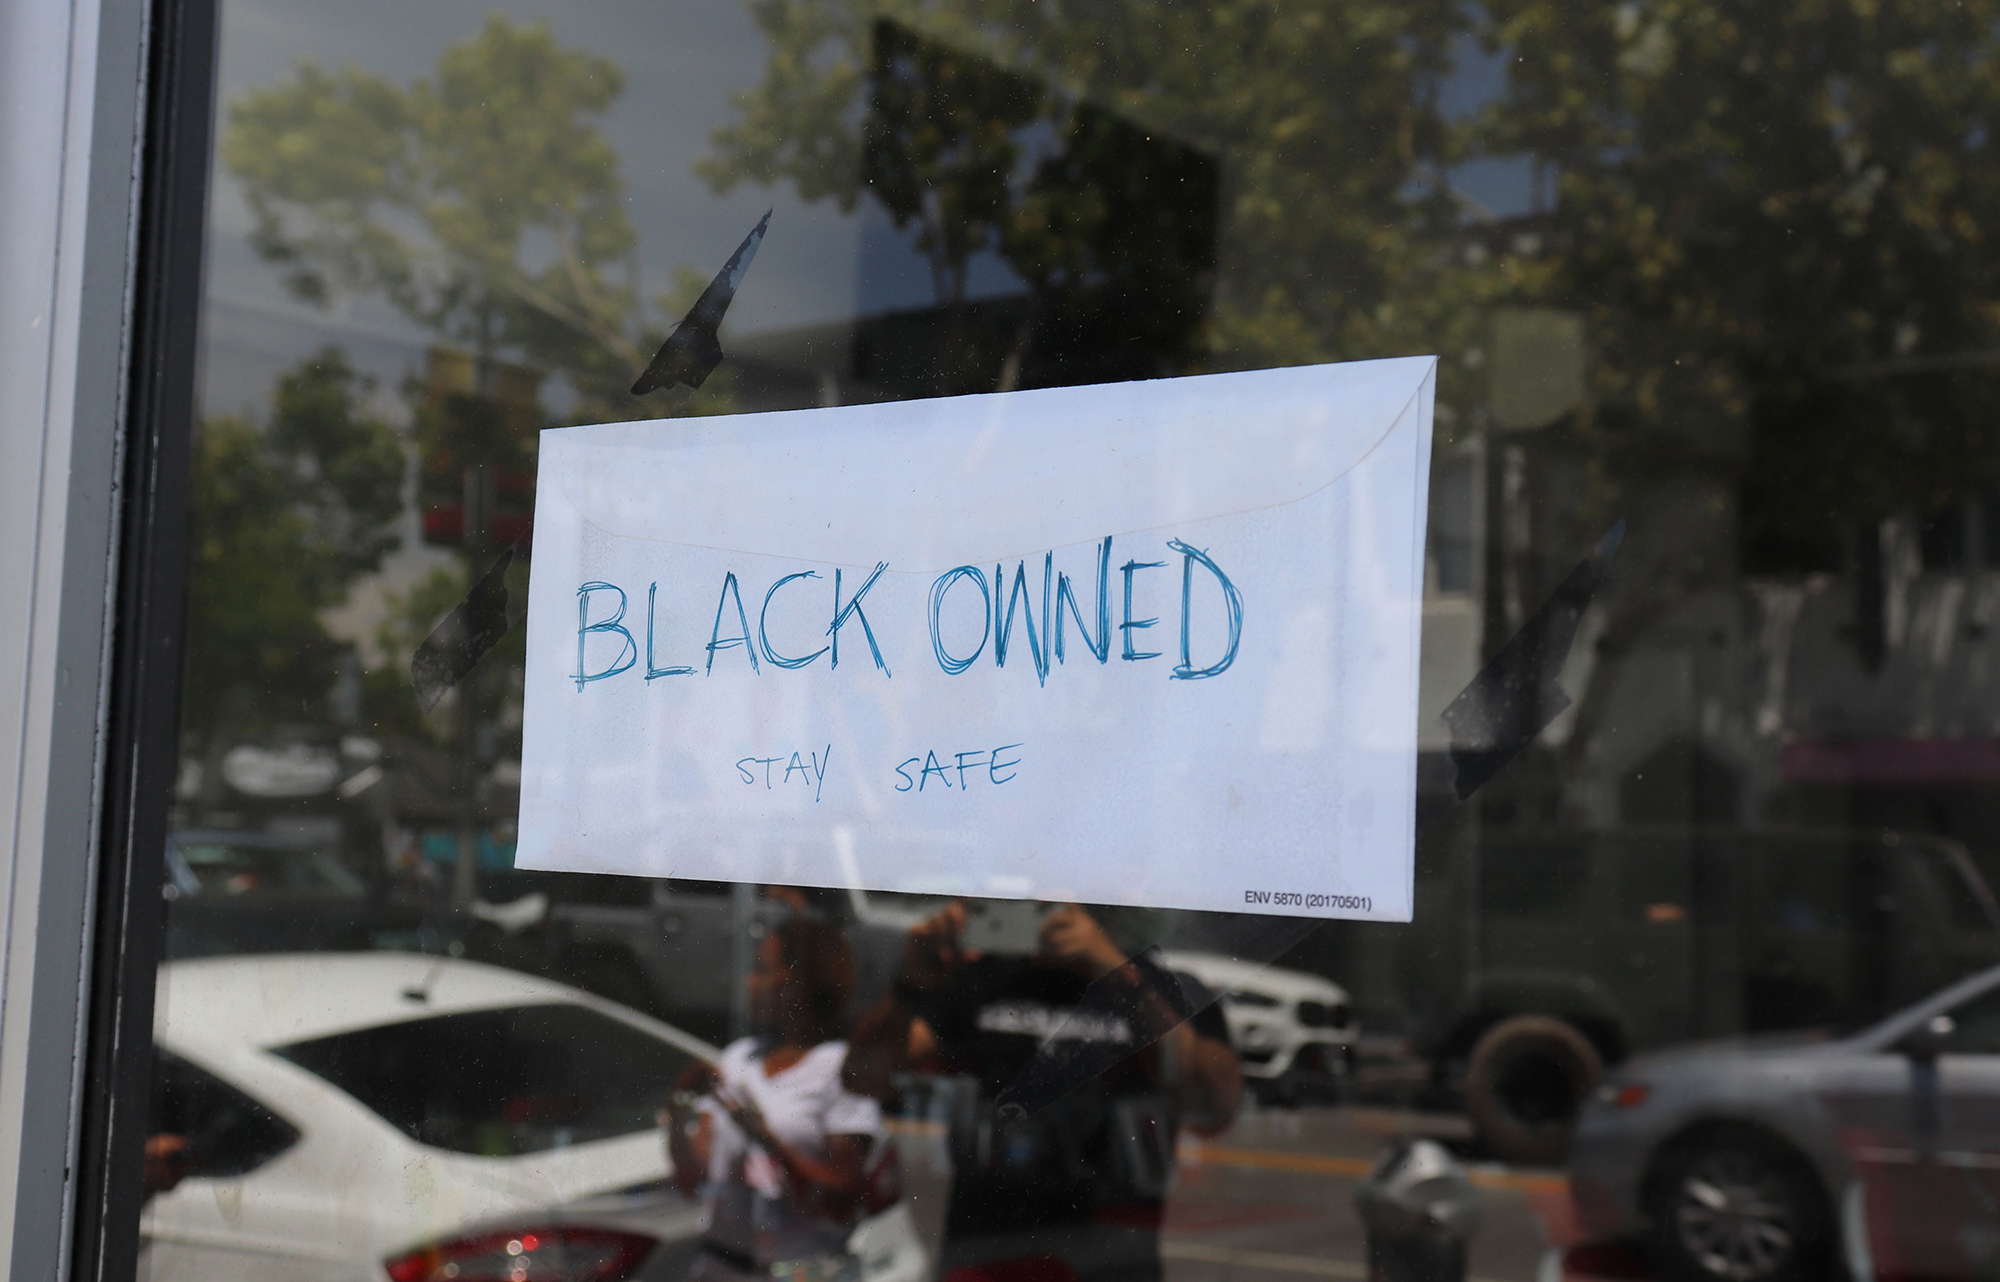 Black-owned companies are shutting down twice as fast as other businesses